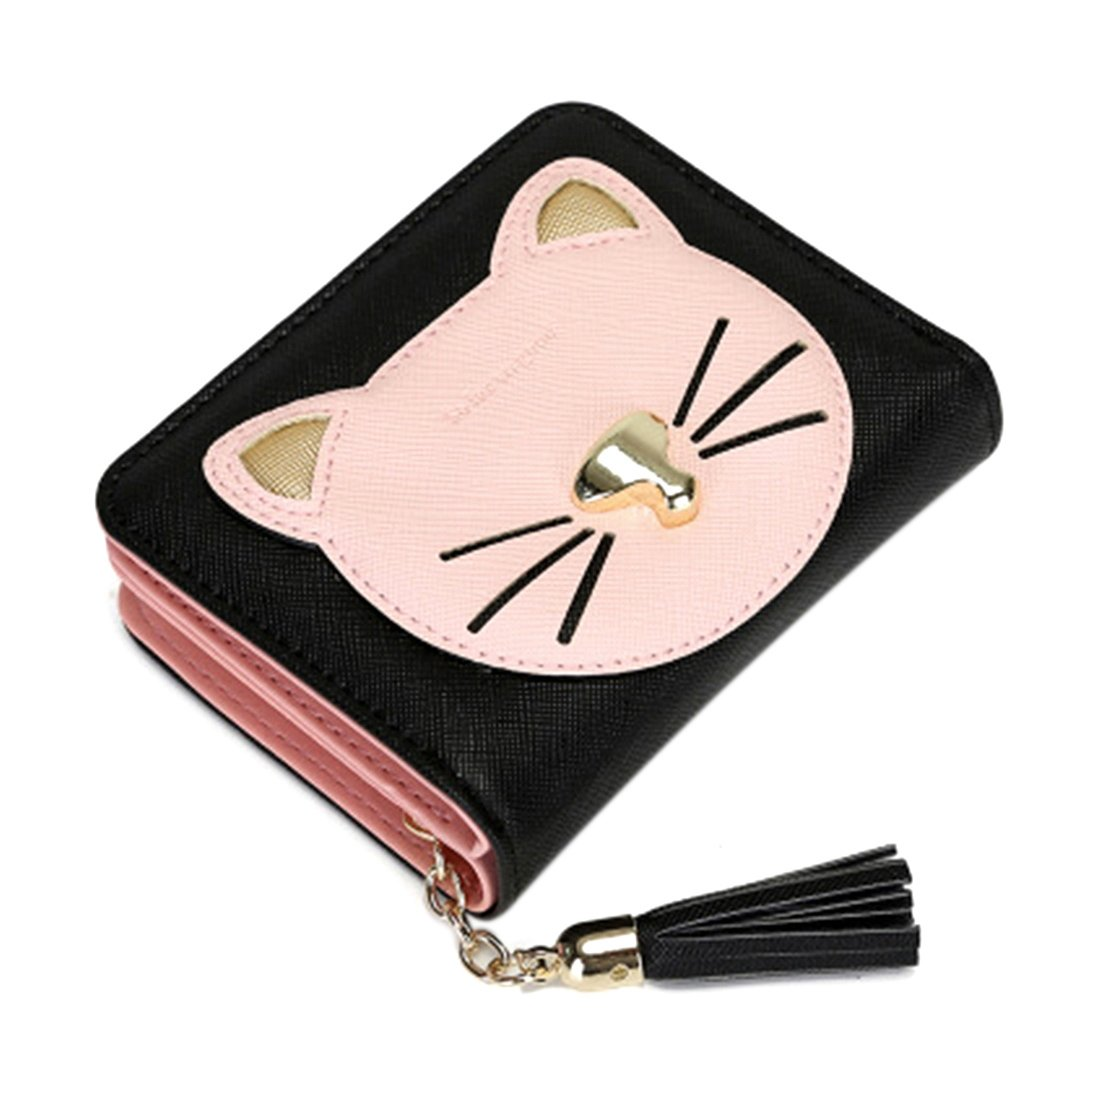 Womens Wallet PU Leather Card Holder Organizer Girls Small Cute Coin Purse (Black)